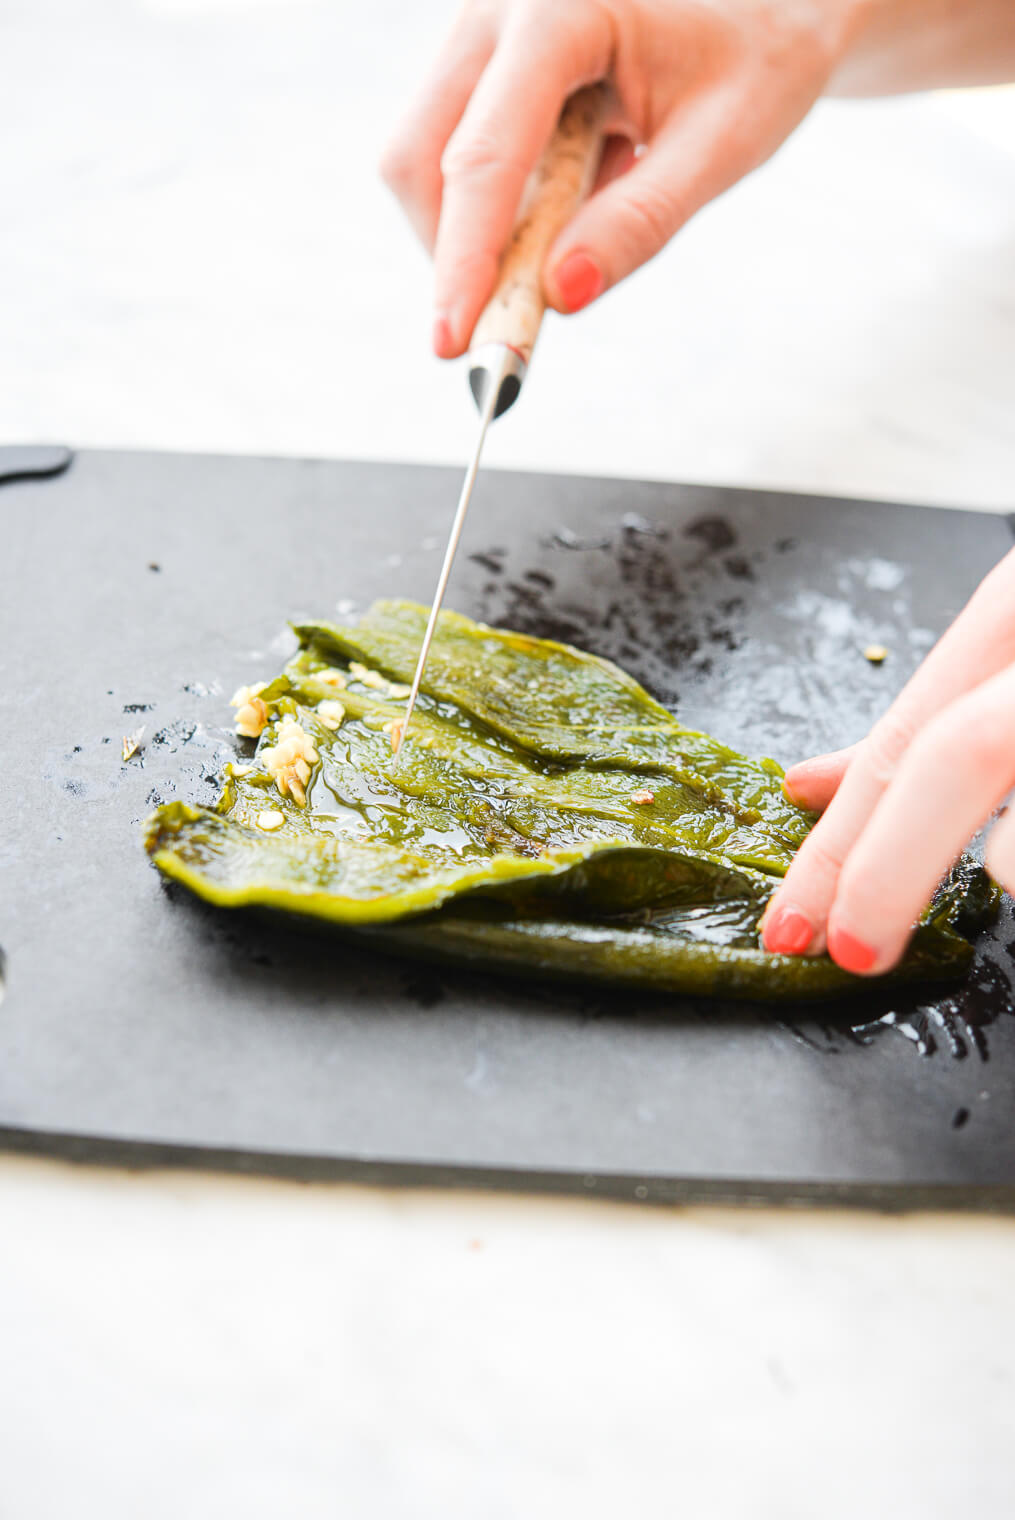 a person using a knife to scrape the seeds out of charred poblano peppers